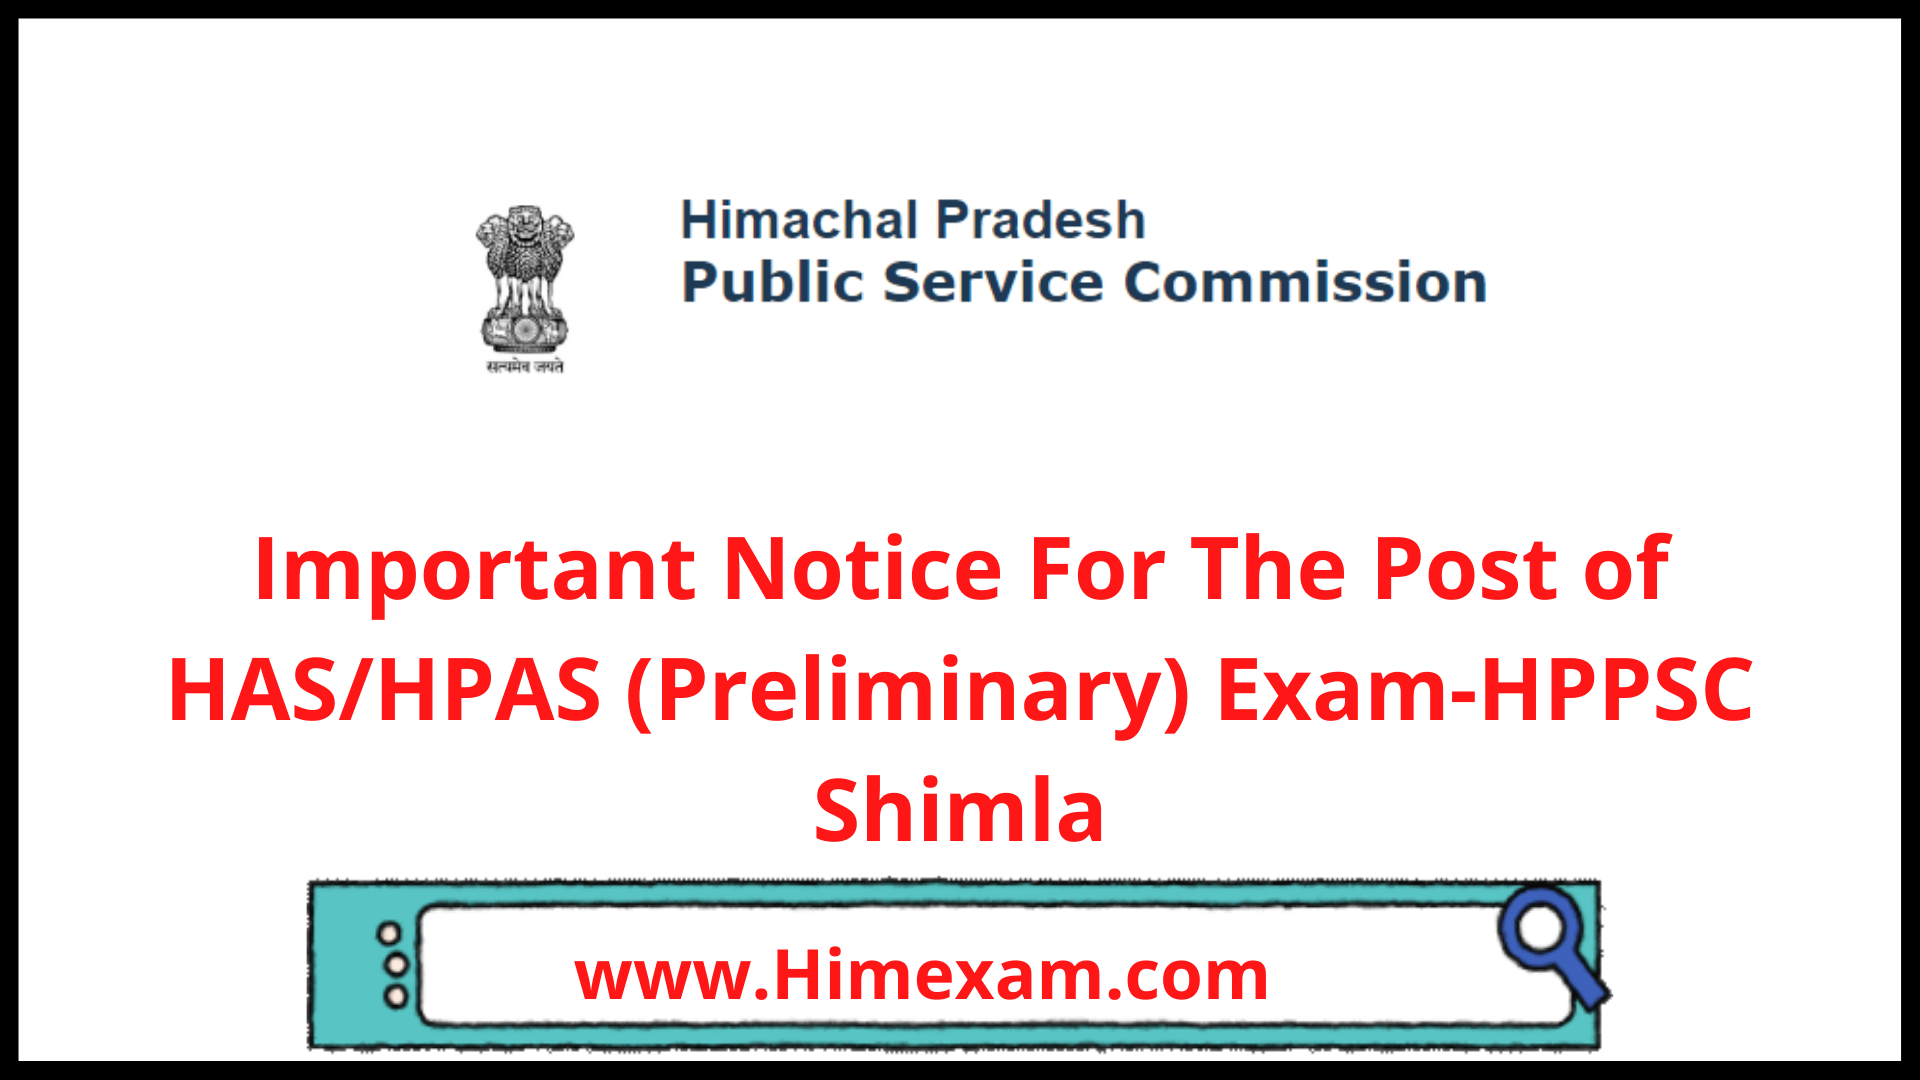 Important Notice For The Post of HAS/HPAS (Preliminary) Exam-HPPSC Shimla